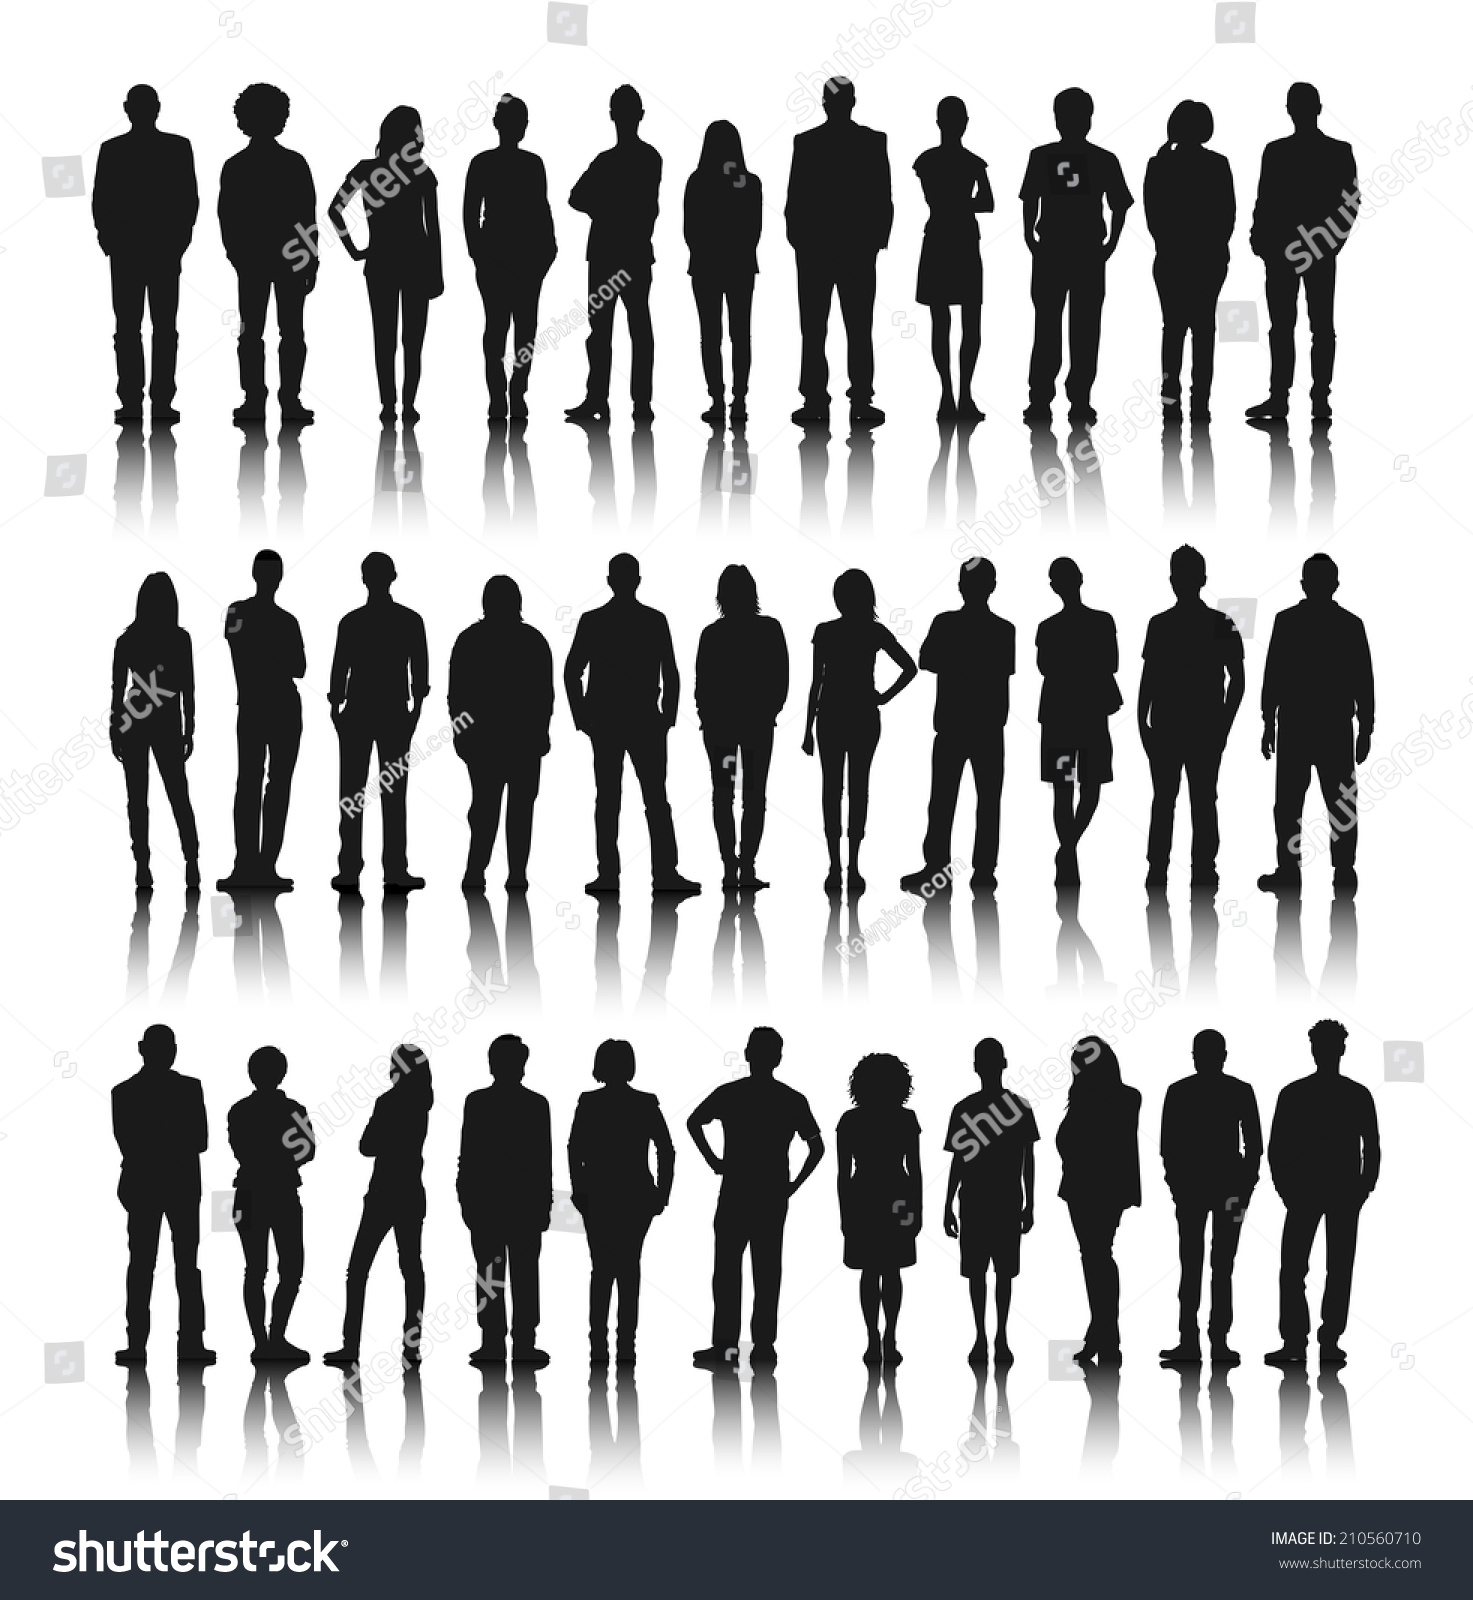 stock-vector-silhouette-group-of-people-